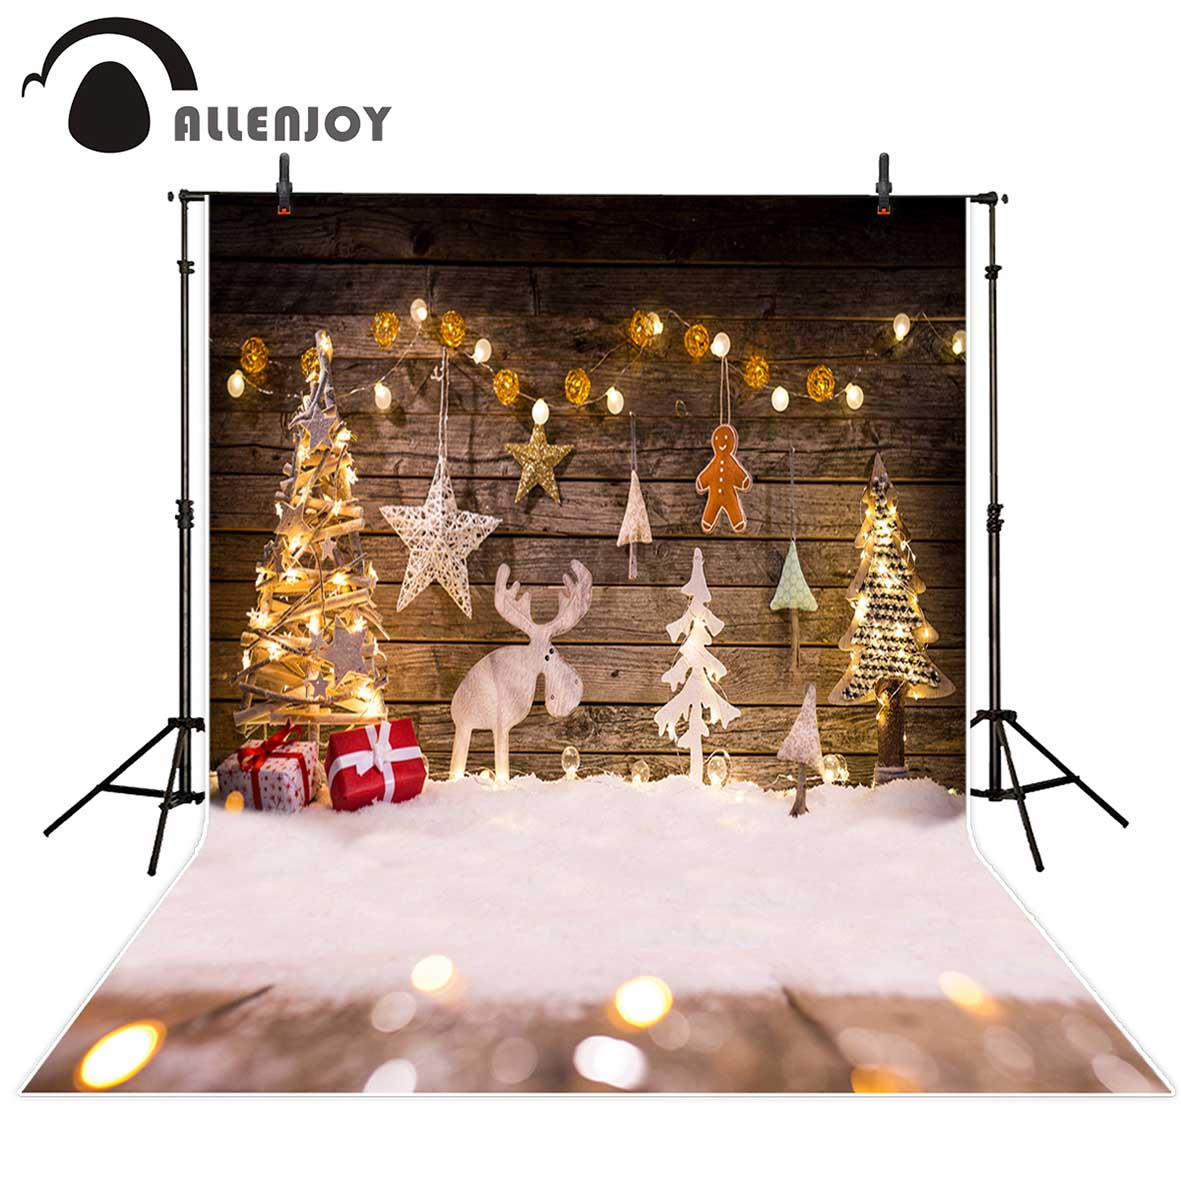 Allenjoy background for photo Christmas shiny tree snow kids wood wall backdrop photocall photobooth photo studio professional allenjoy wedding custom photography backdrop photo studio wood party decor celebrate background photocall photobooth photocall